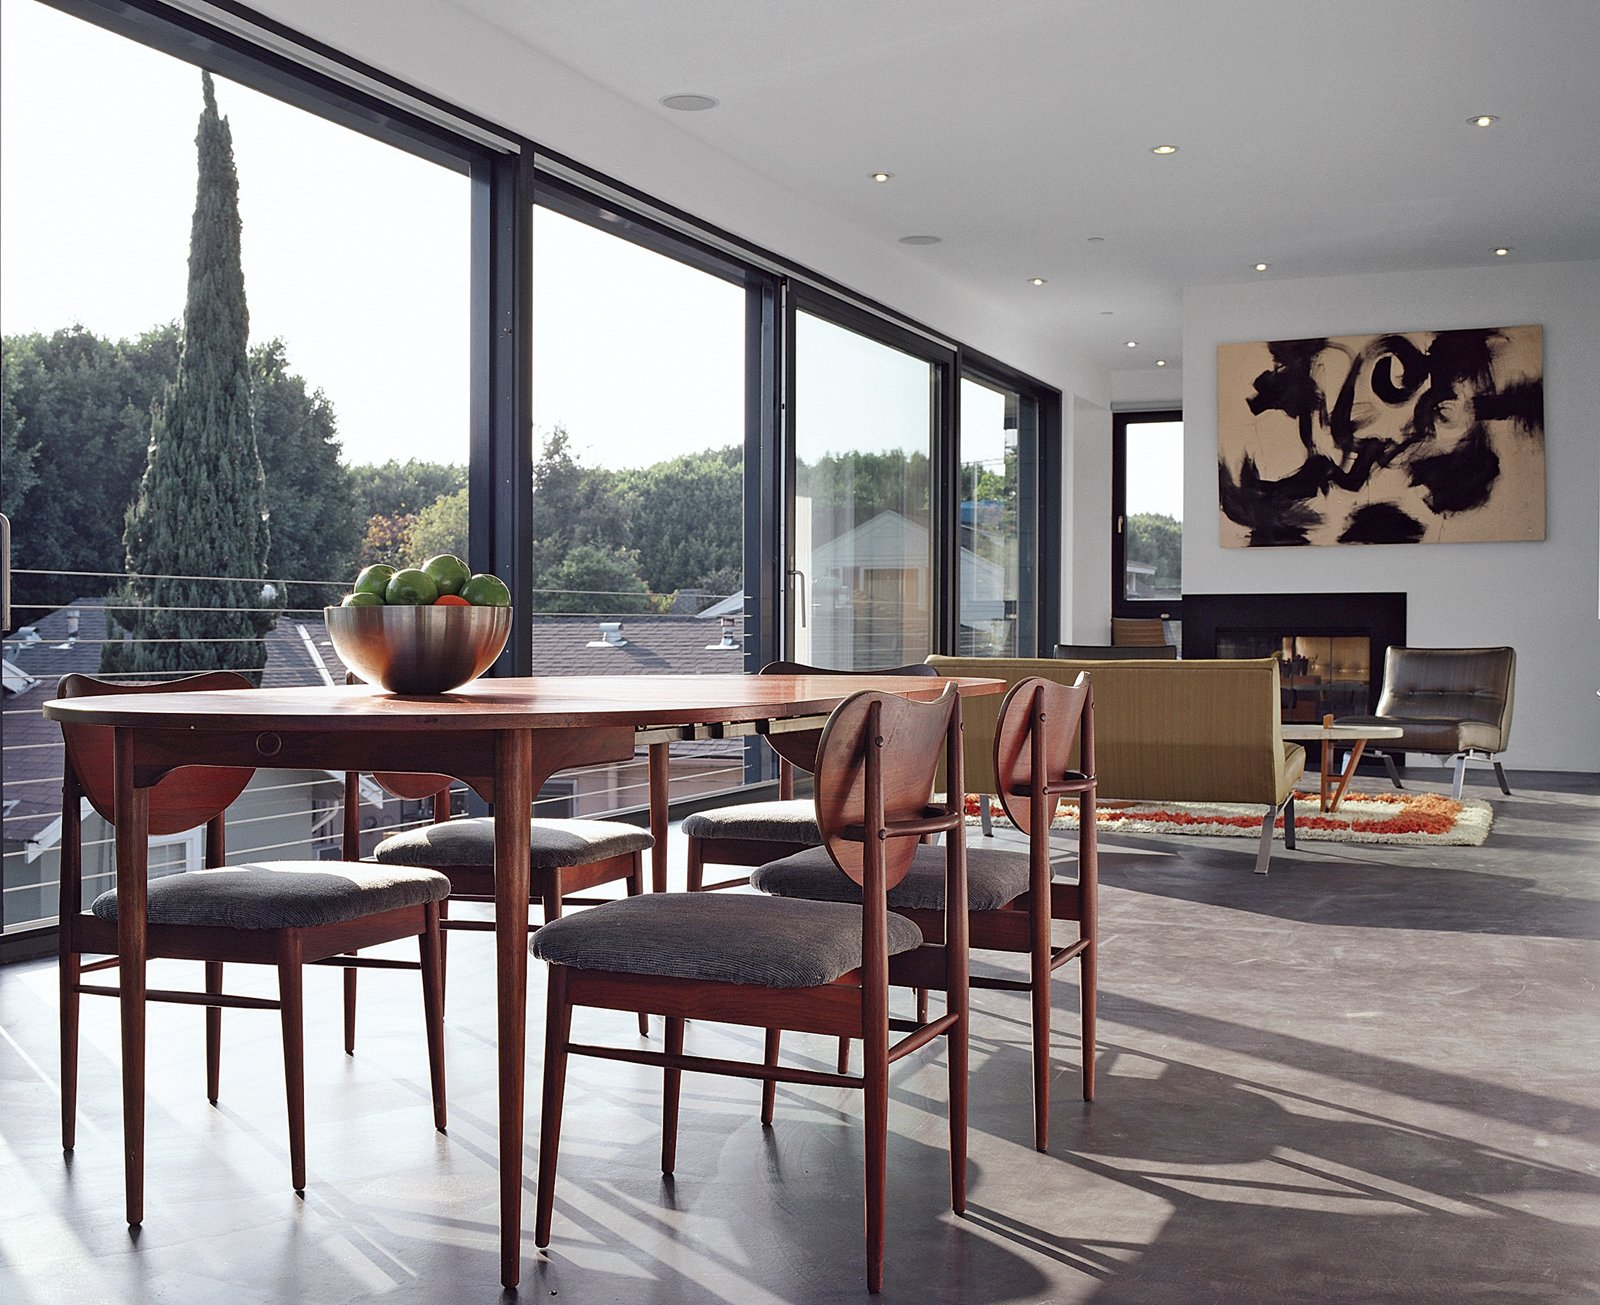 Throughout the house operable windows enable cross ventilation. The ones Reitz and Kurath used contain krypton gas, a dense gas that enables heat to be transmitted more slowly, between the panes. The dining table and chairs are vintage Danish pieces.